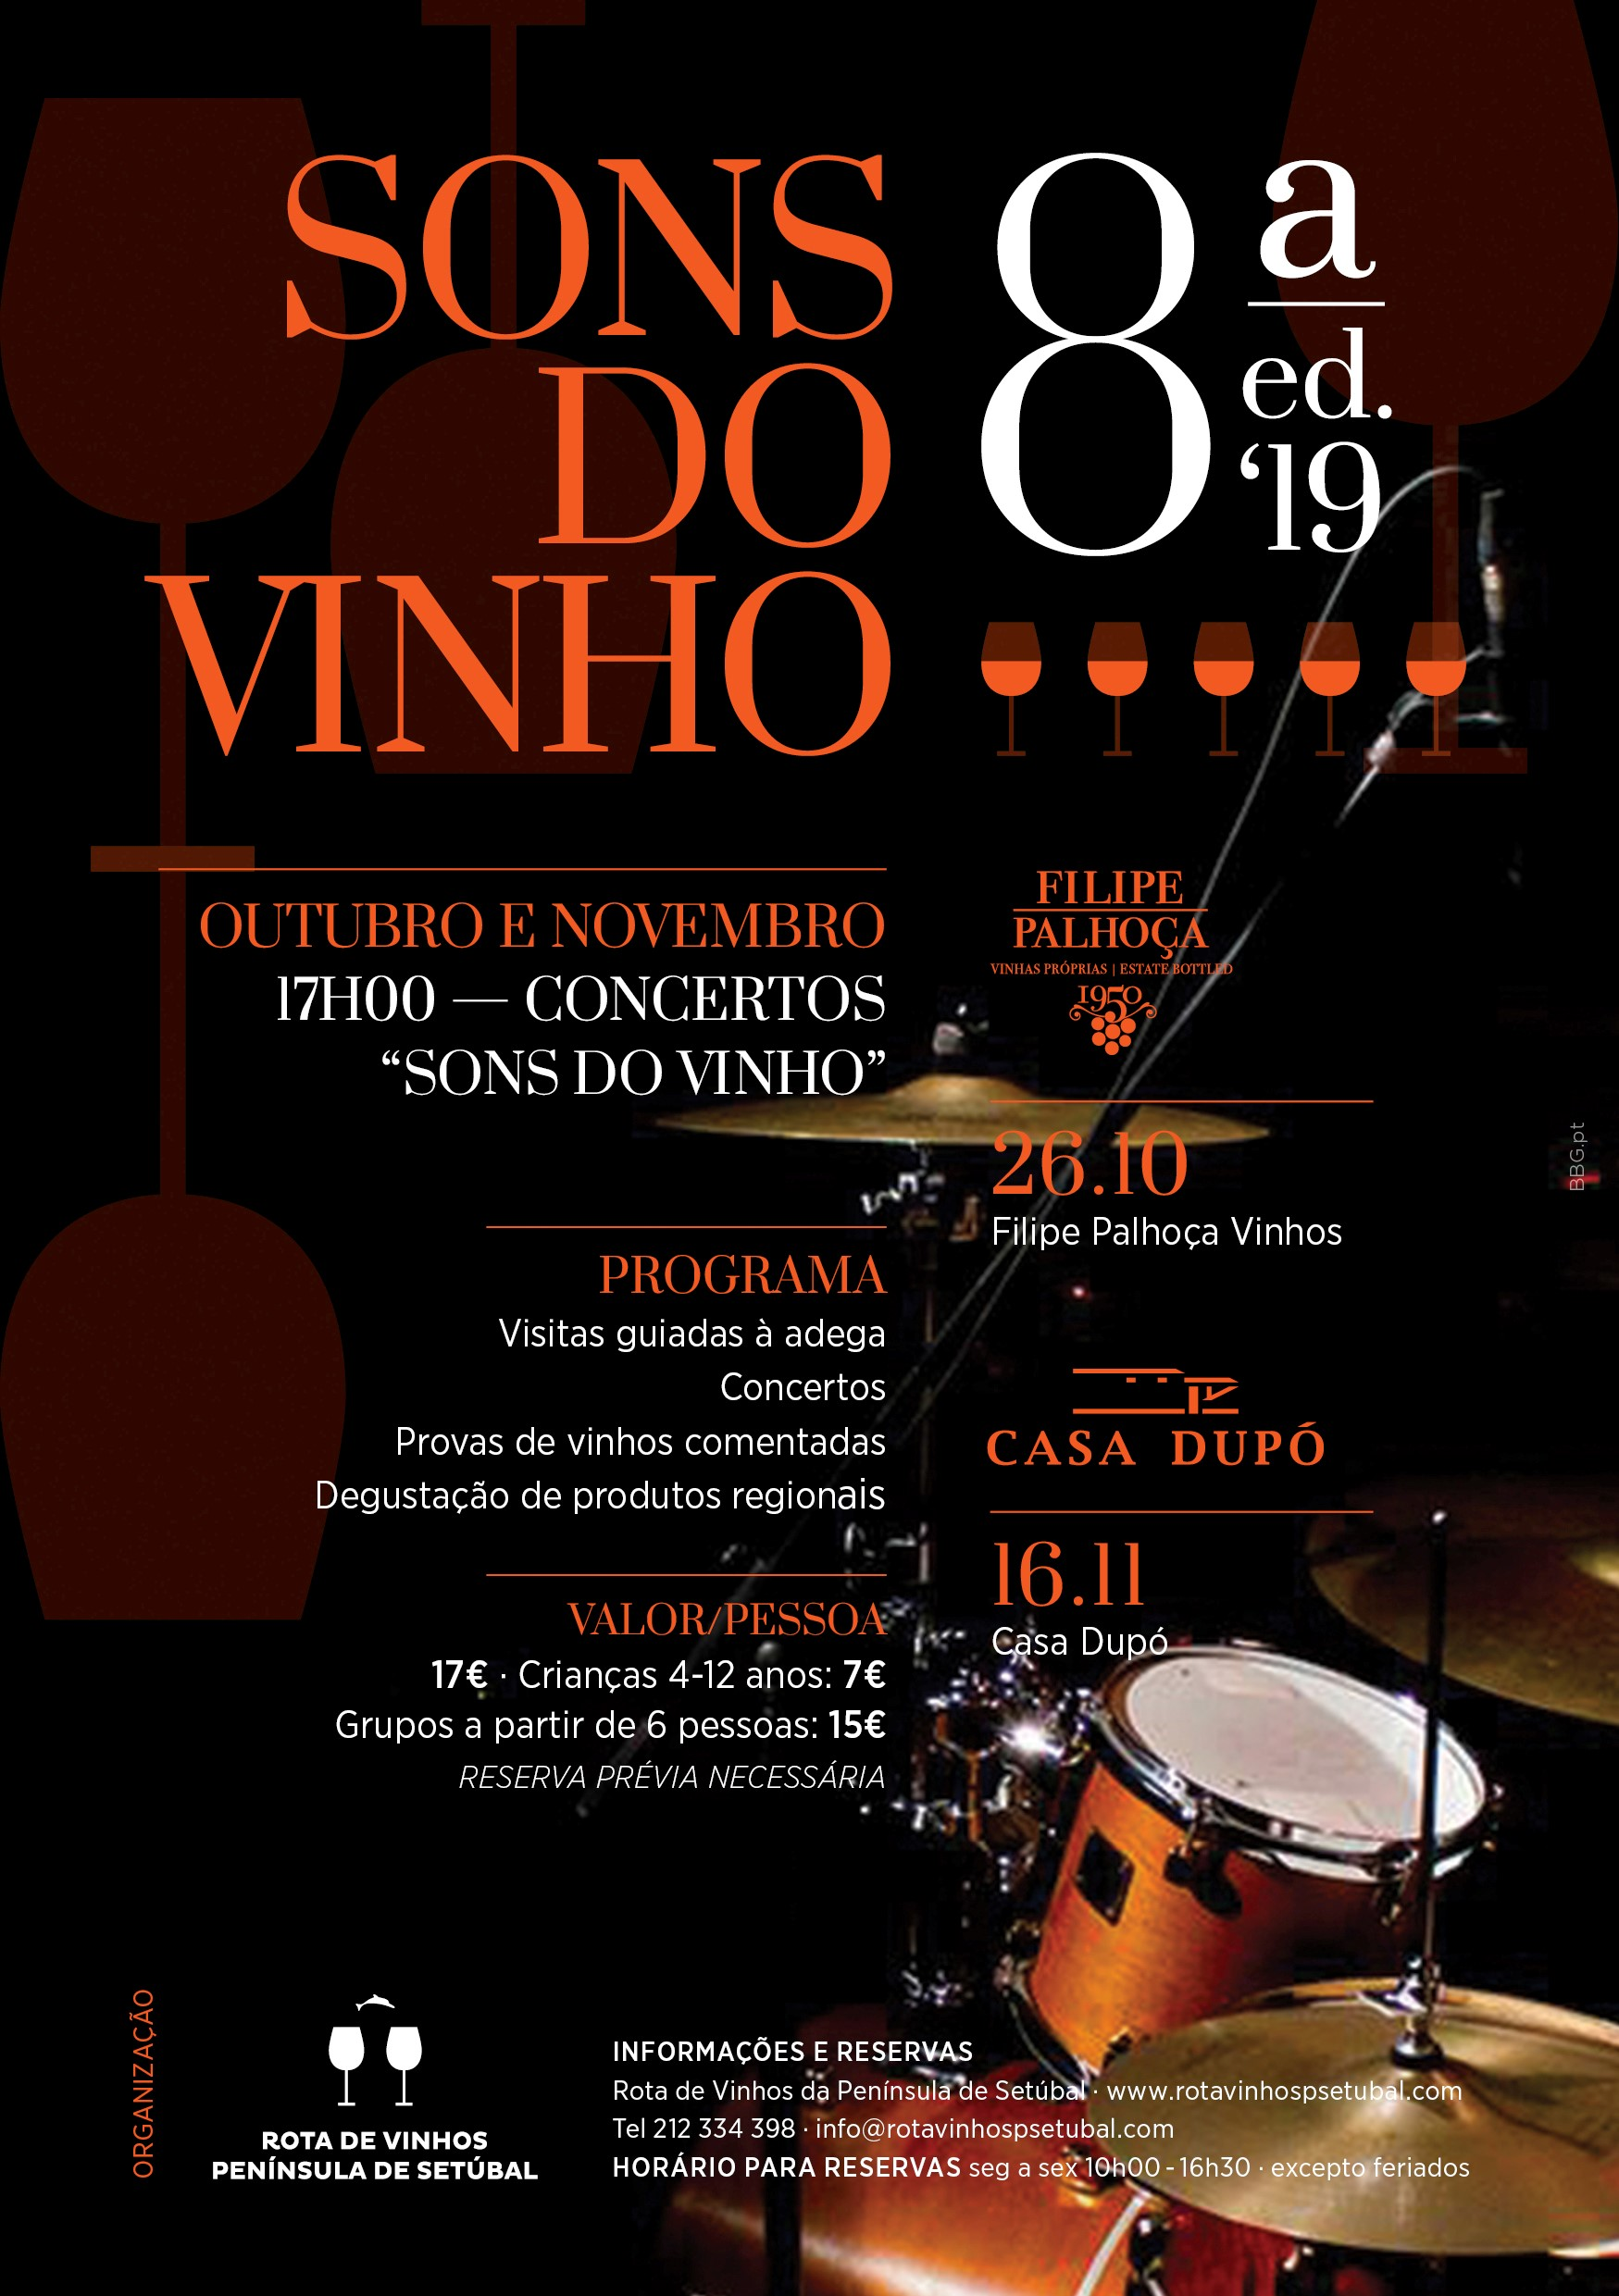 Sons do Vinho 2019